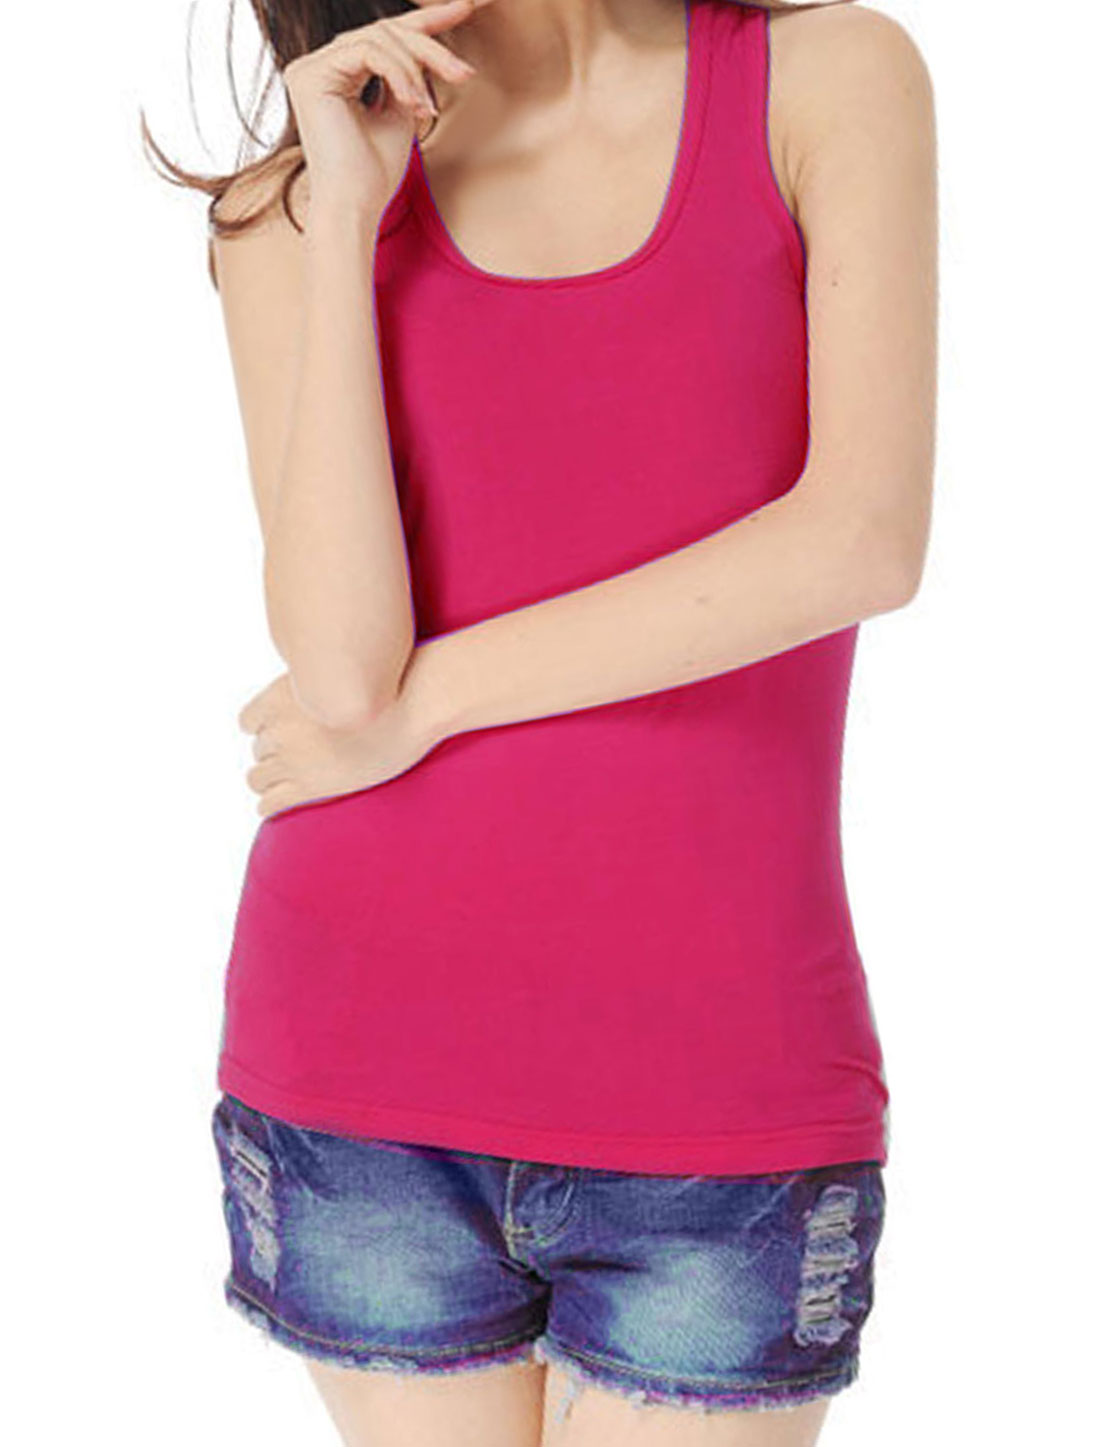 U Neck Ribbed Fuchsia Stretchy Racerback Tank Top Shirt XS for Women